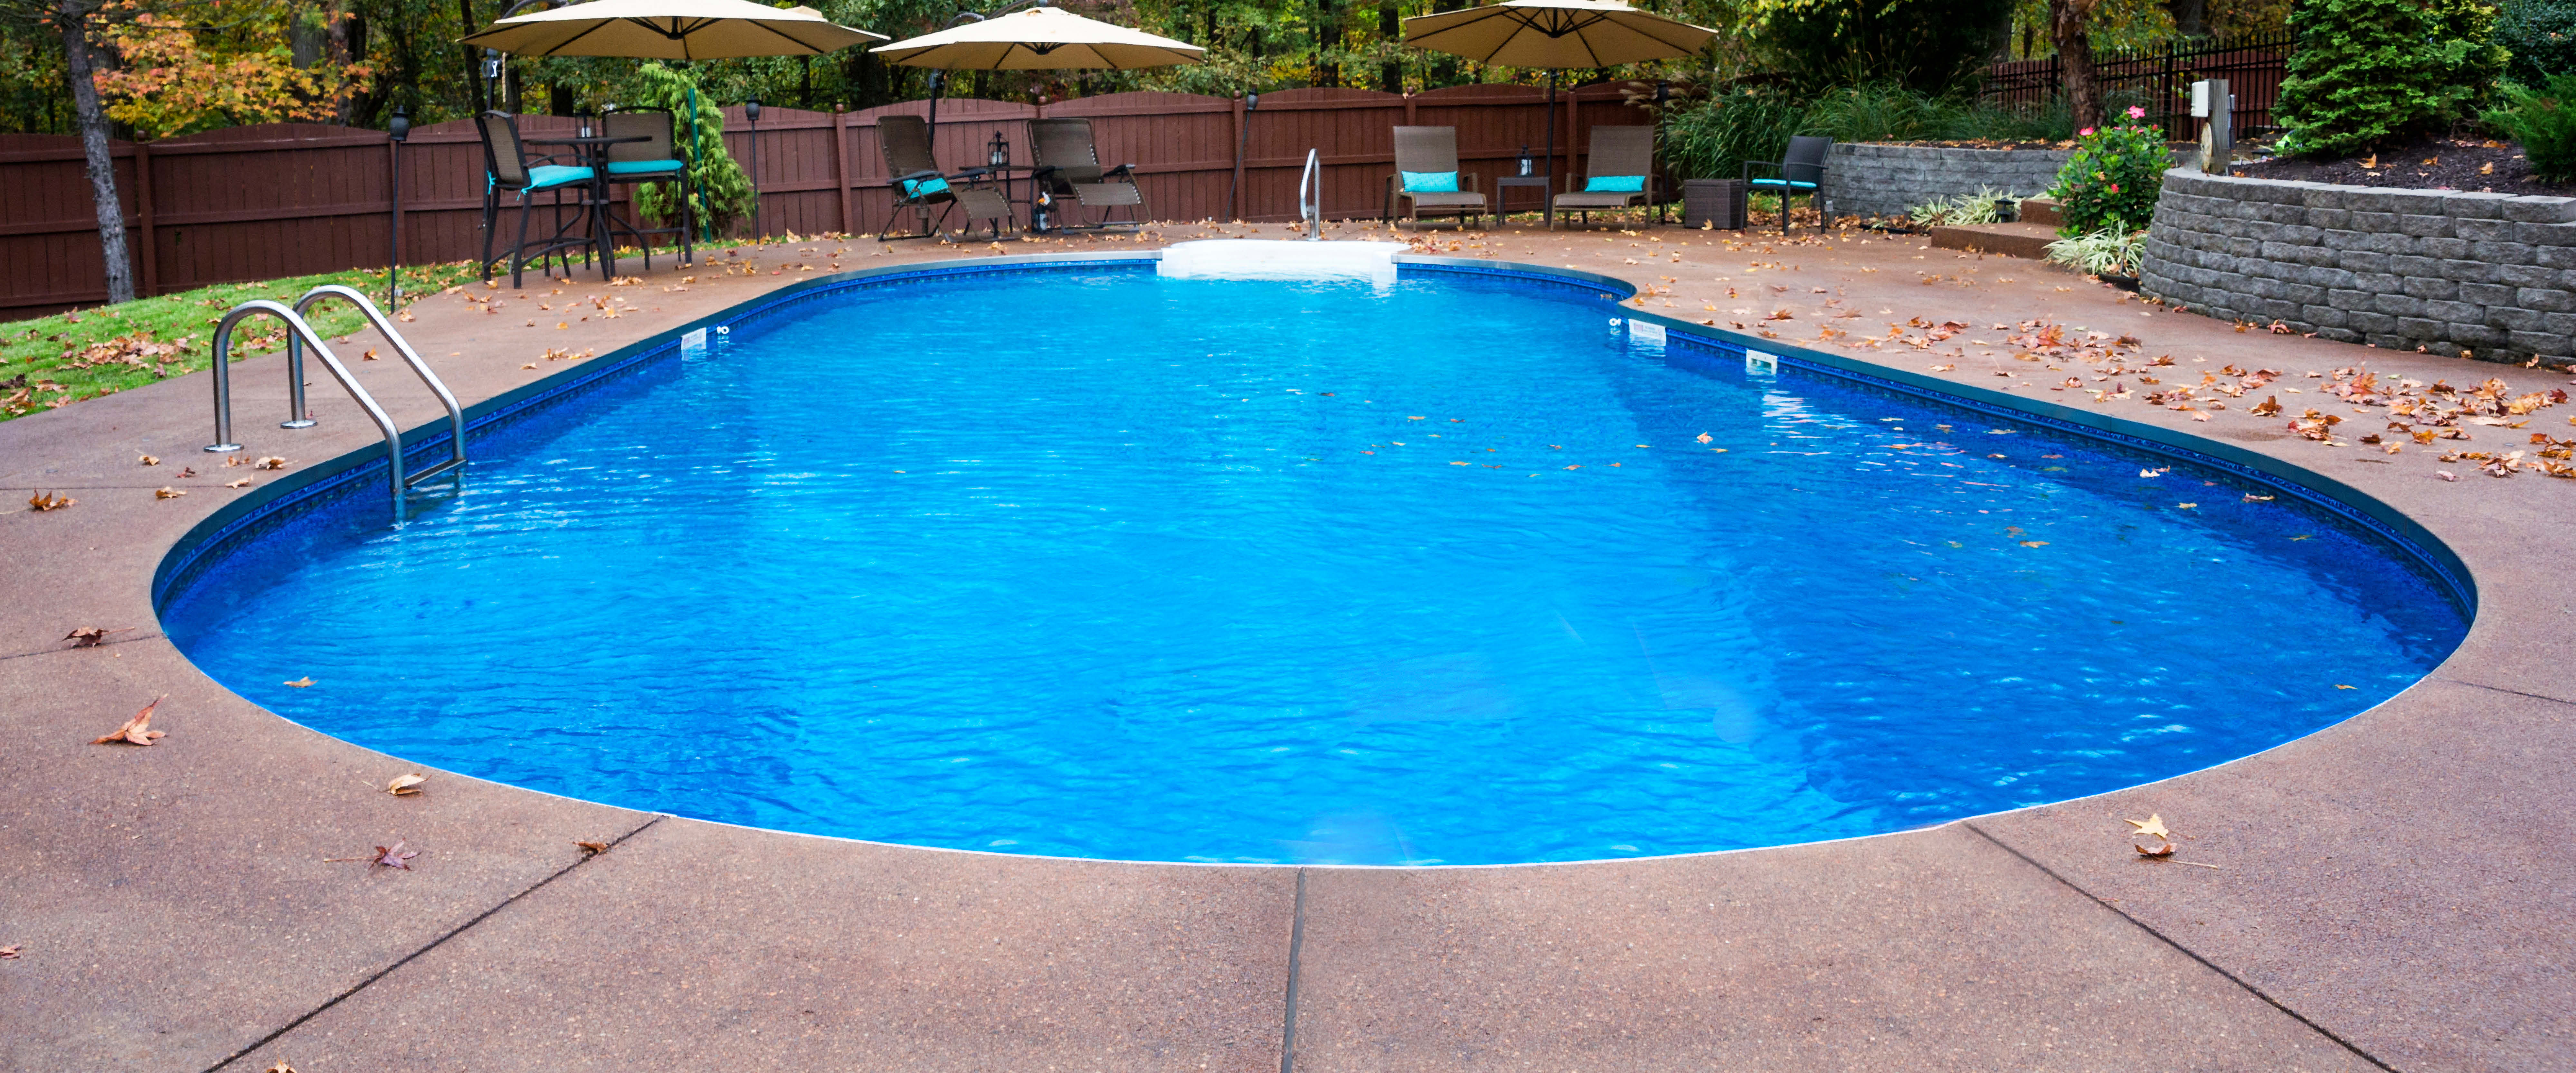 DIY Pool Closing Guide - Advice - Pioneer Family Pools Blog